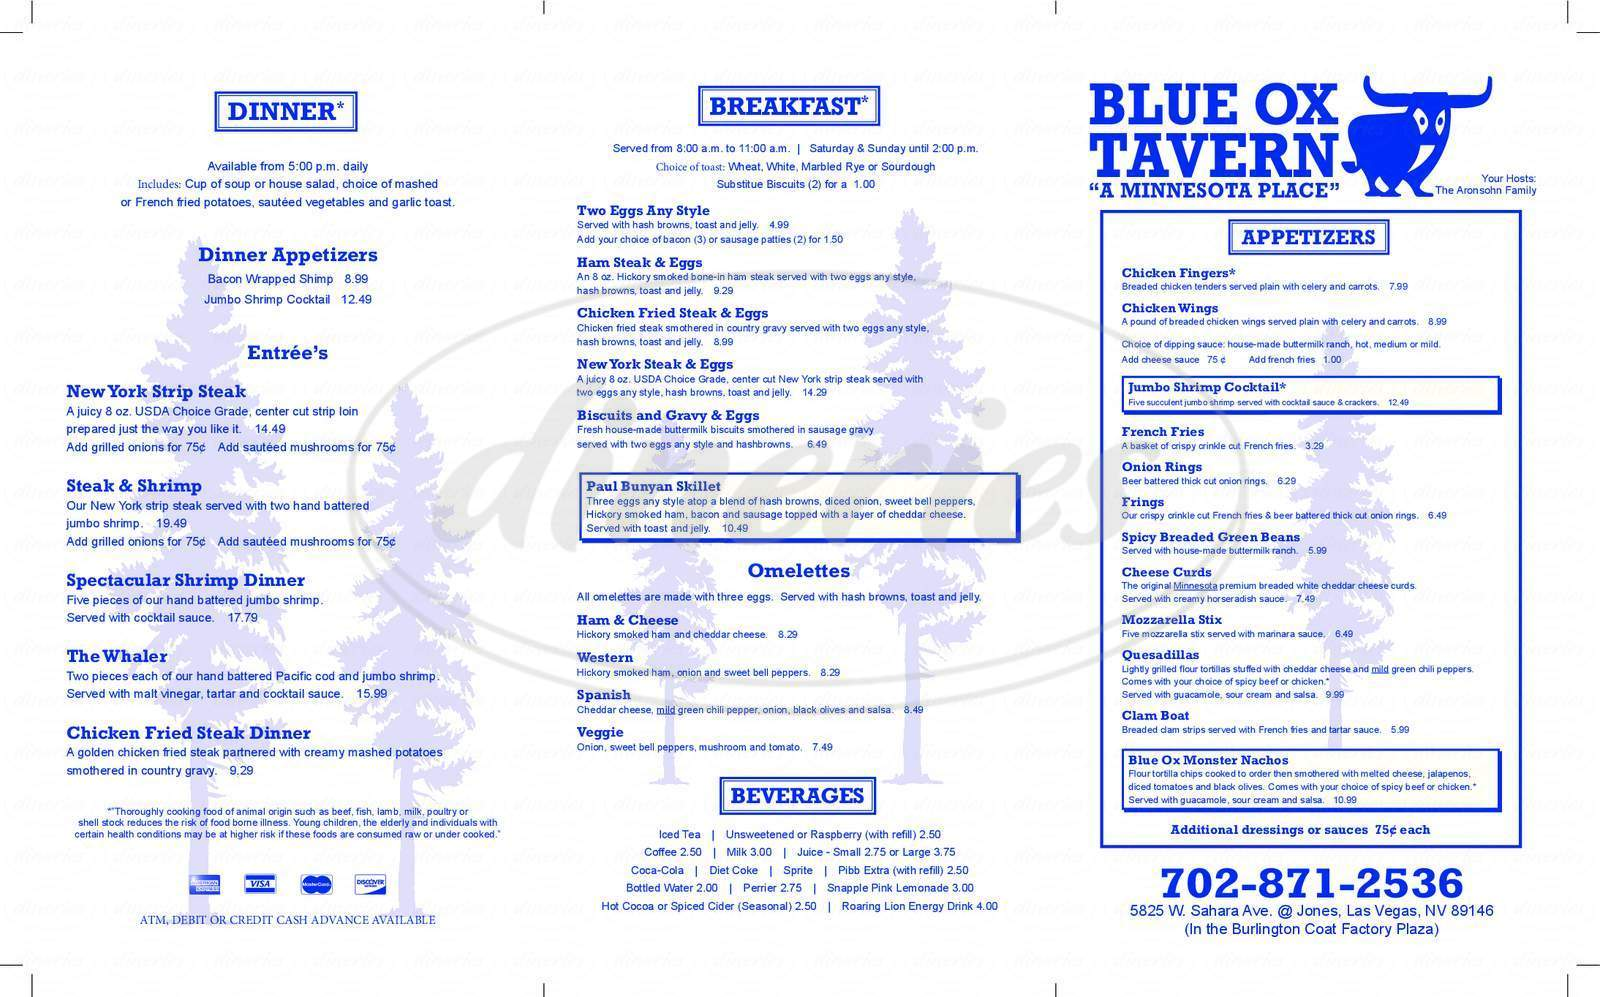 menu for Blue Ox Tavern